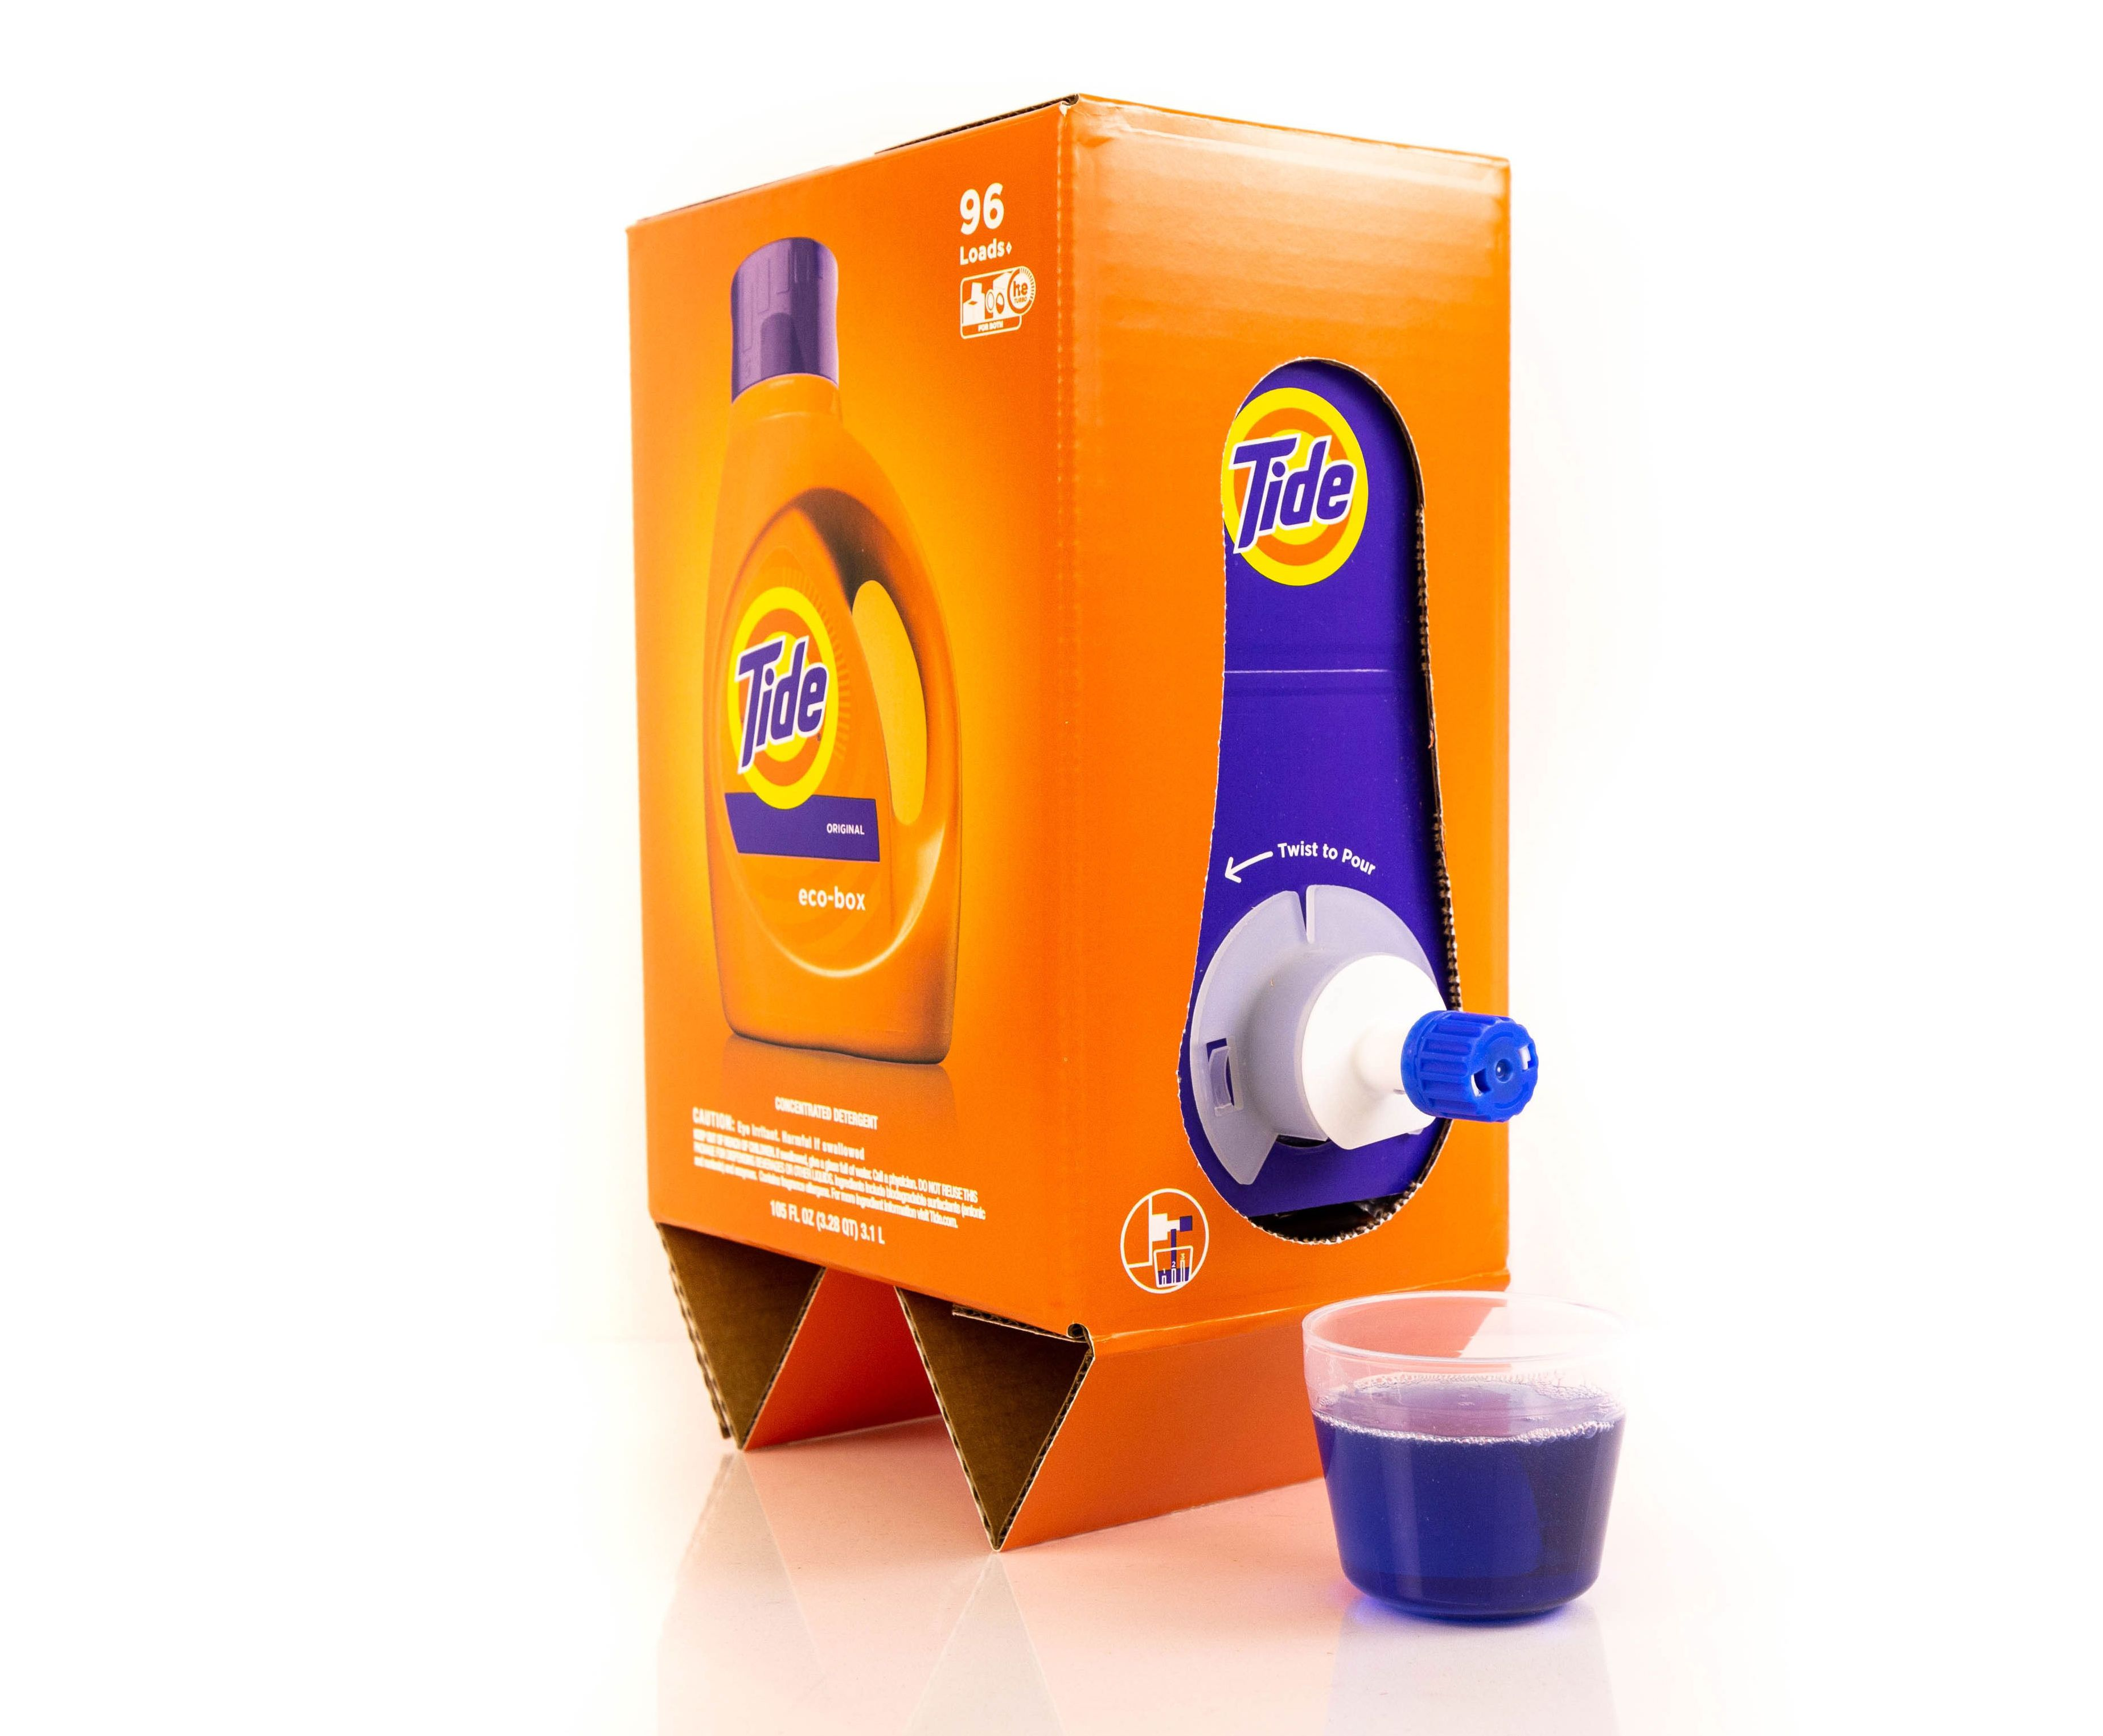 Tide's New Eco Box Totally Resembles Boxed Wine